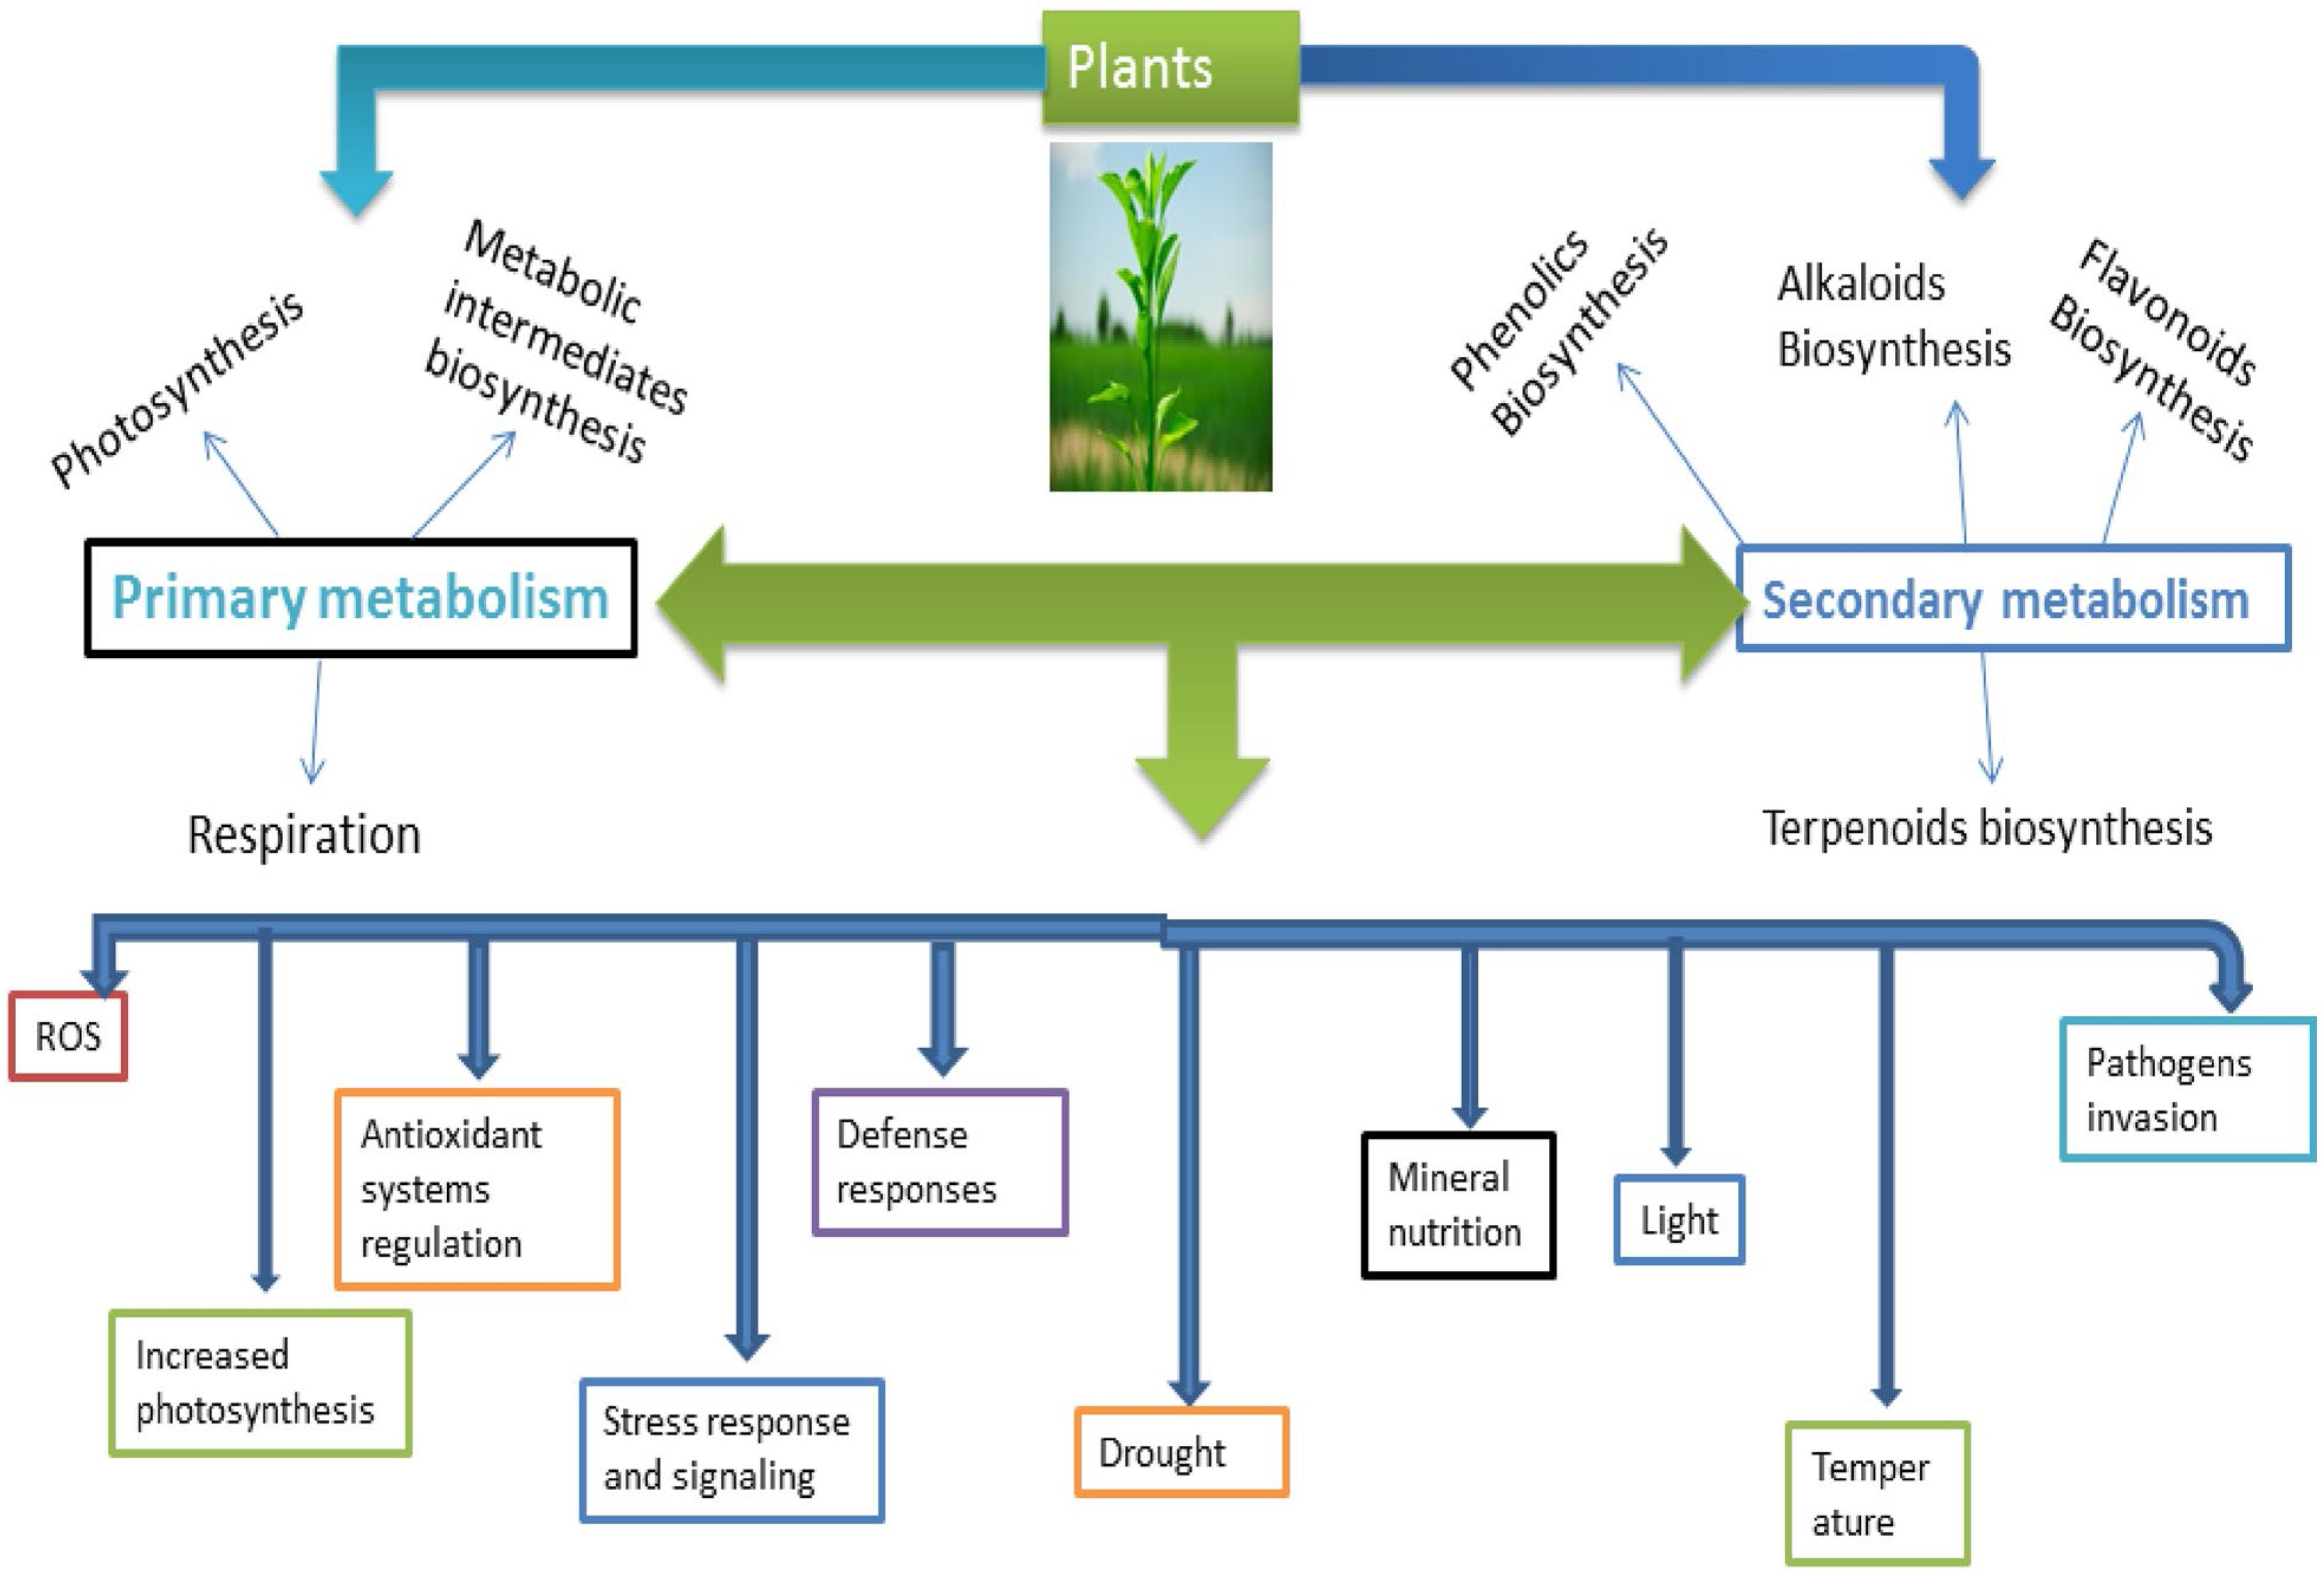 Stress And Defense Responses In Plant Secondary Metabolites Production